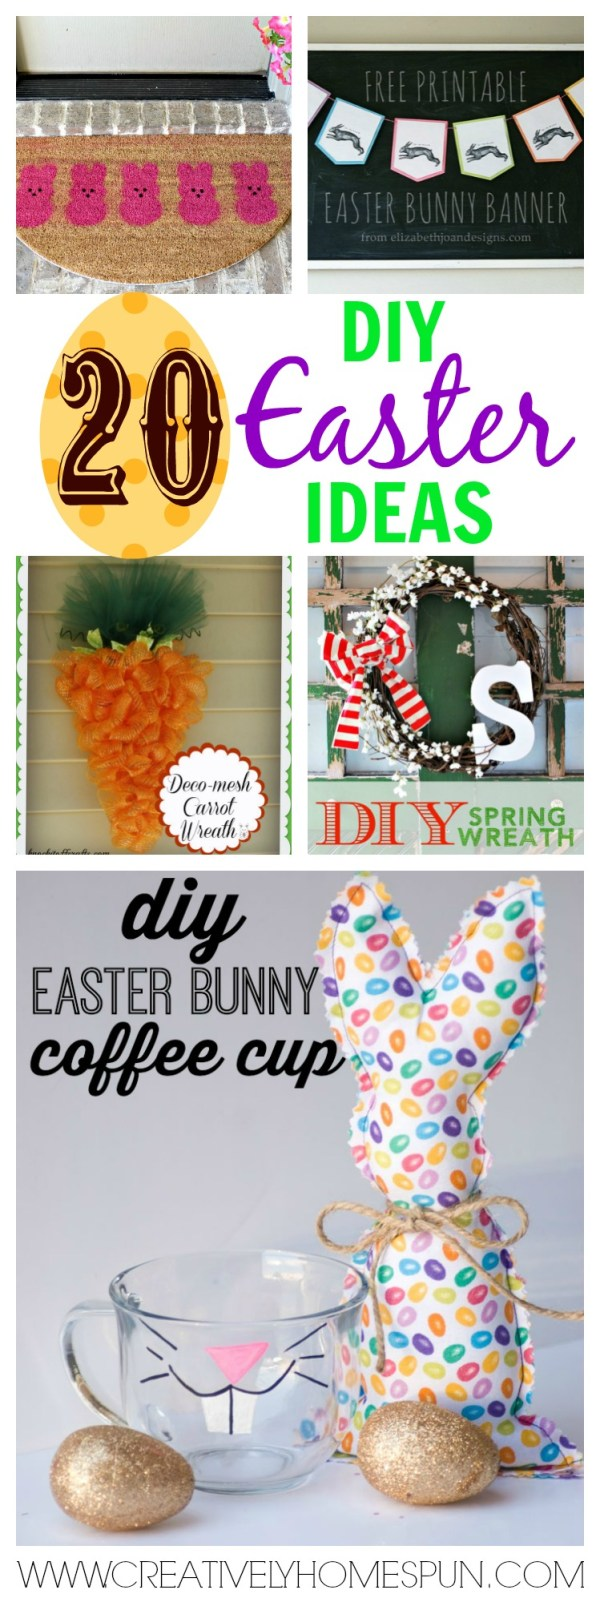 20 diy Easter ideas